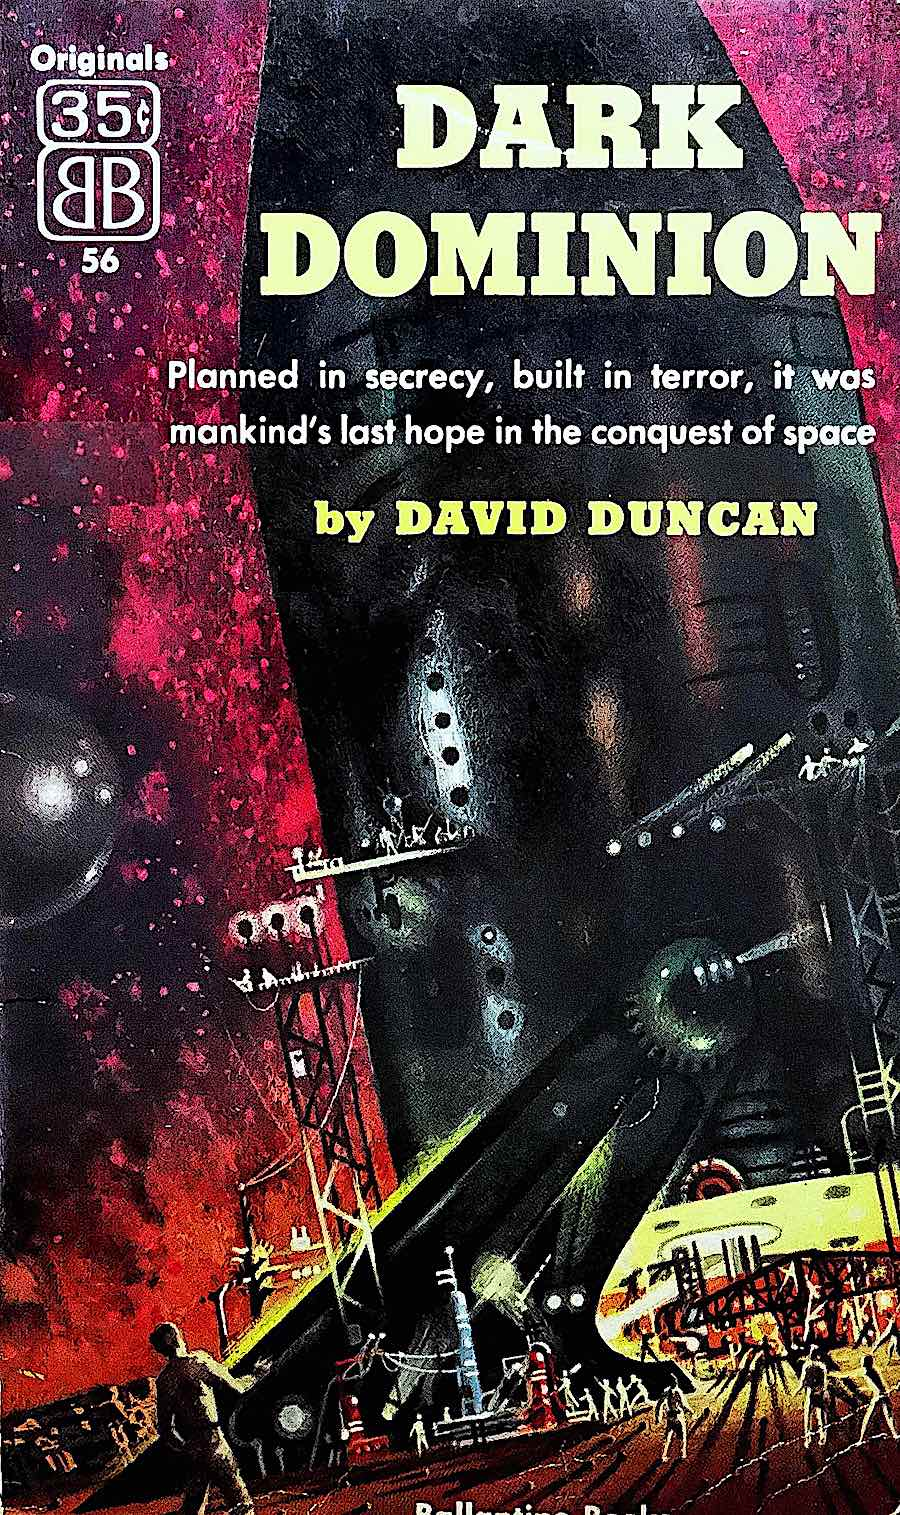 a Richard Powers illustration for a book cover, Dark Dominion by David Duncan